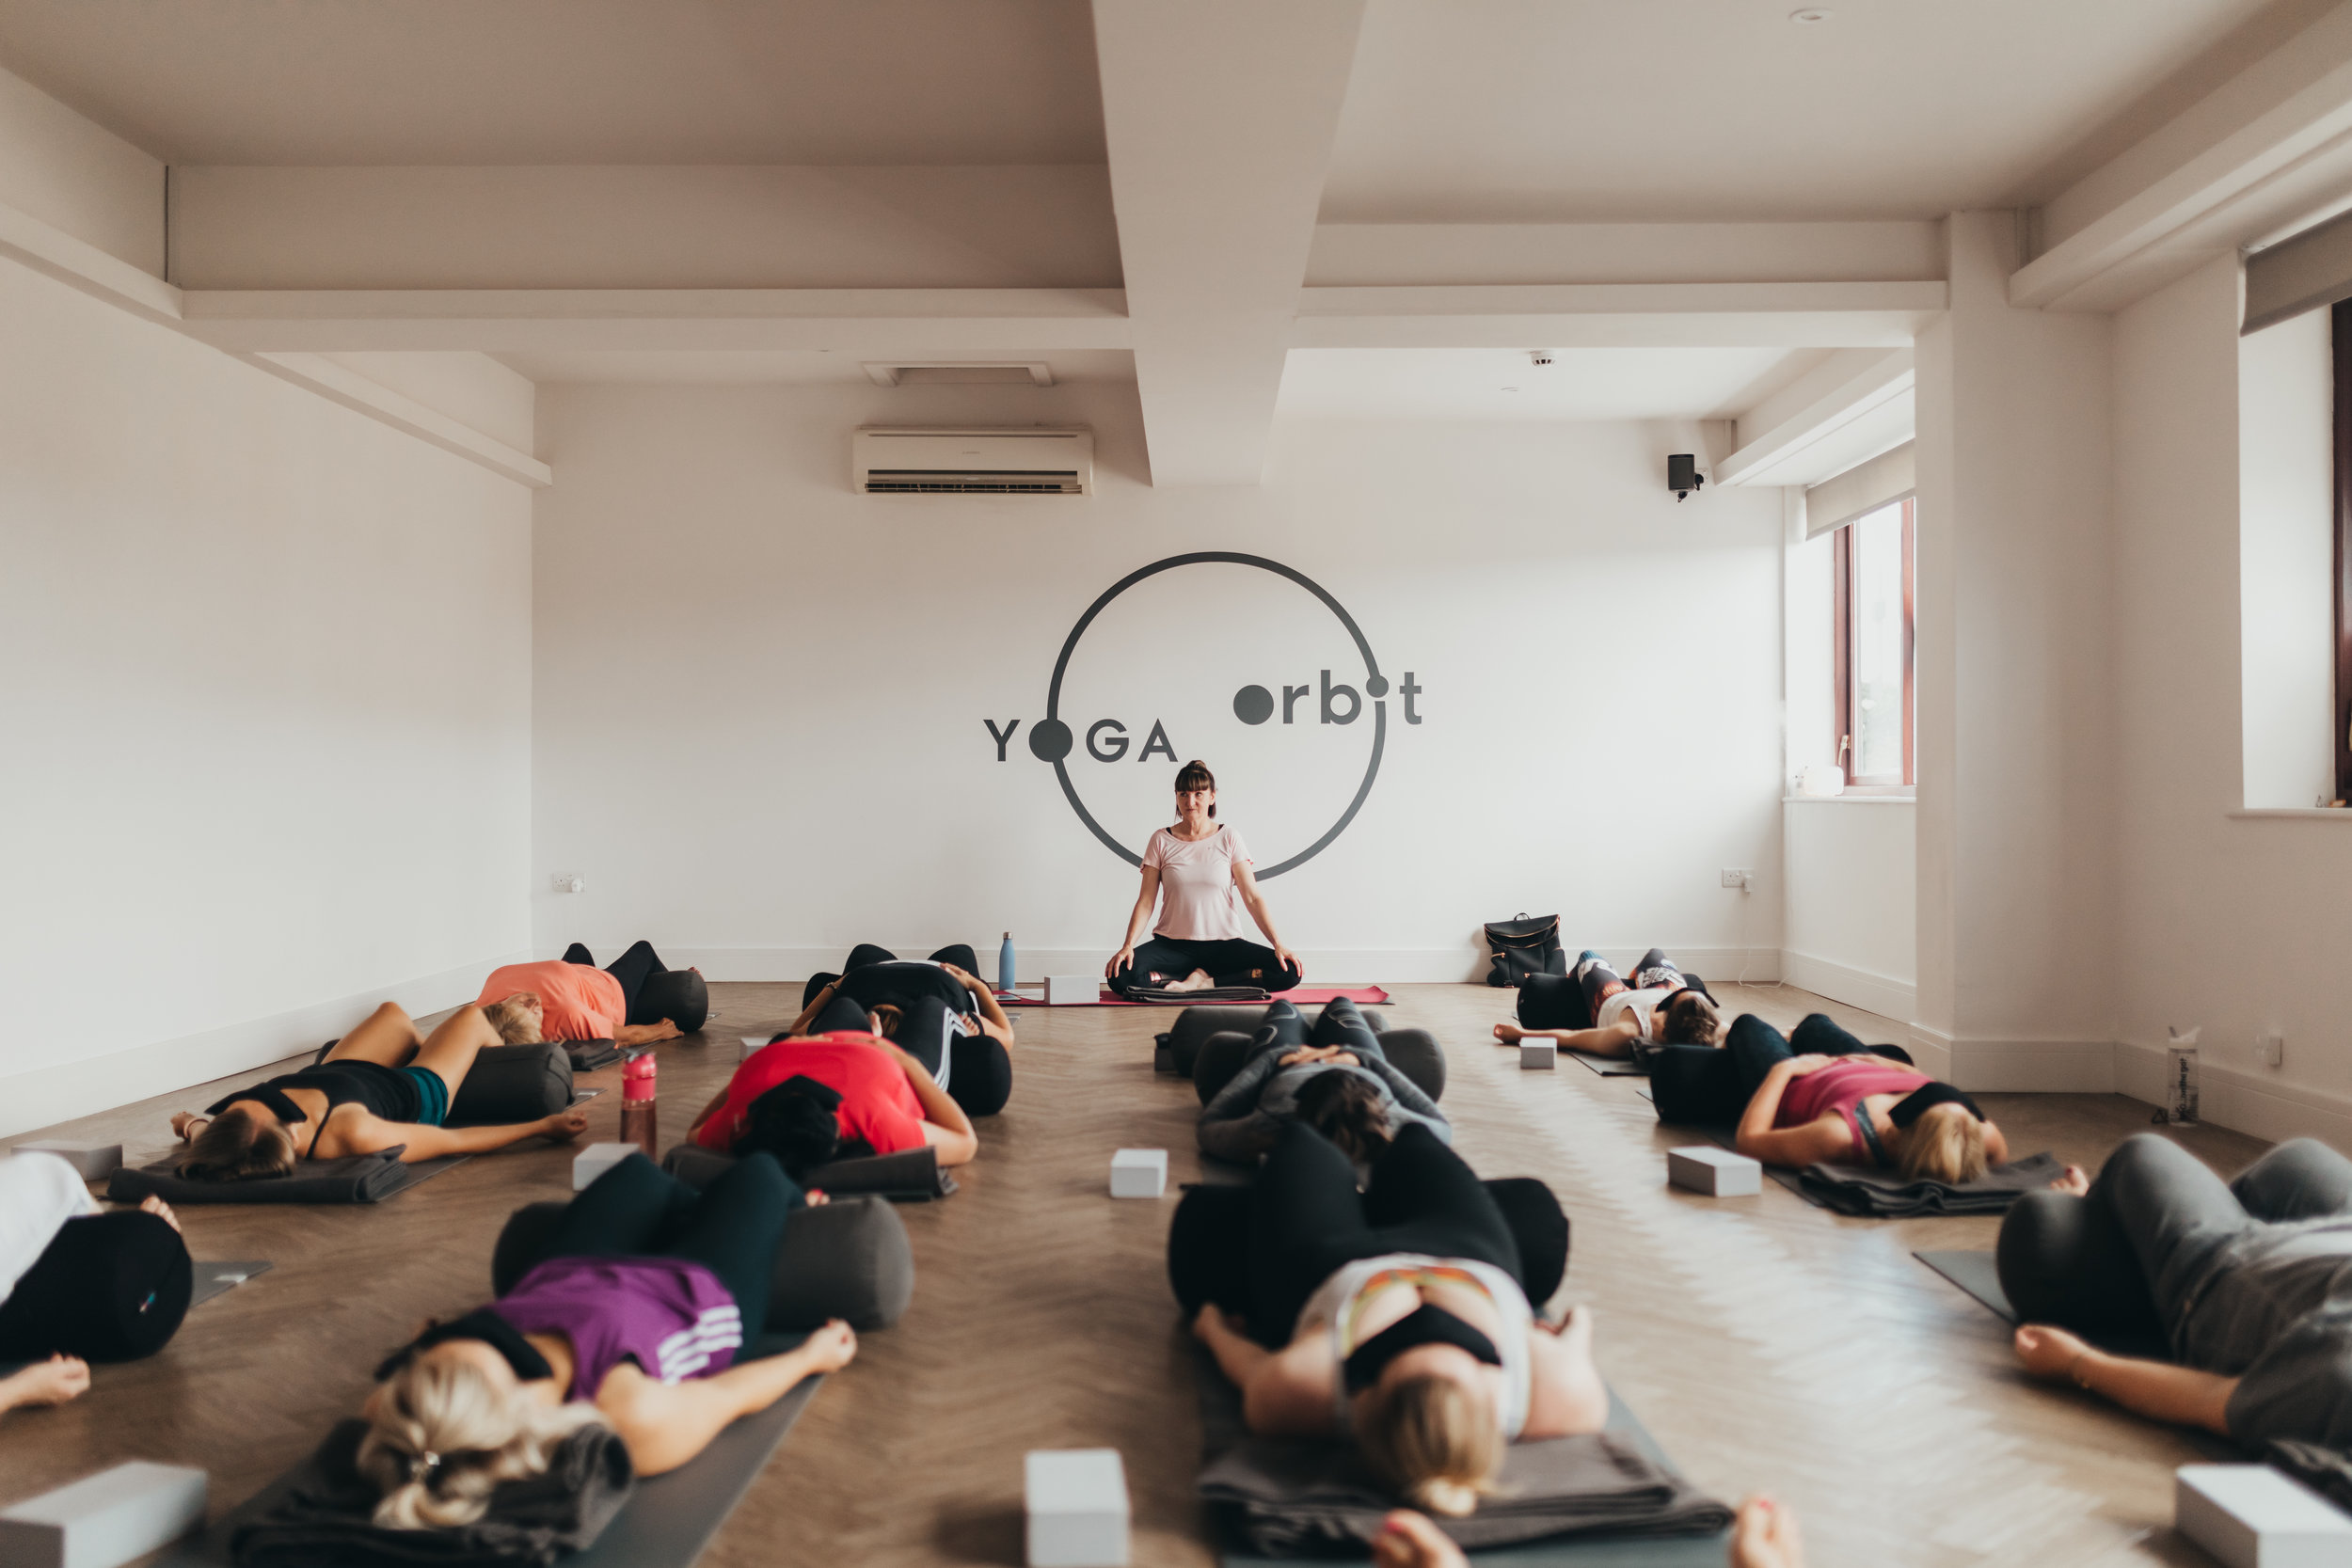 Workshops & events - We host workshops with the world's best teachers, allowing you to explore something new or to dive deeper into your practice.